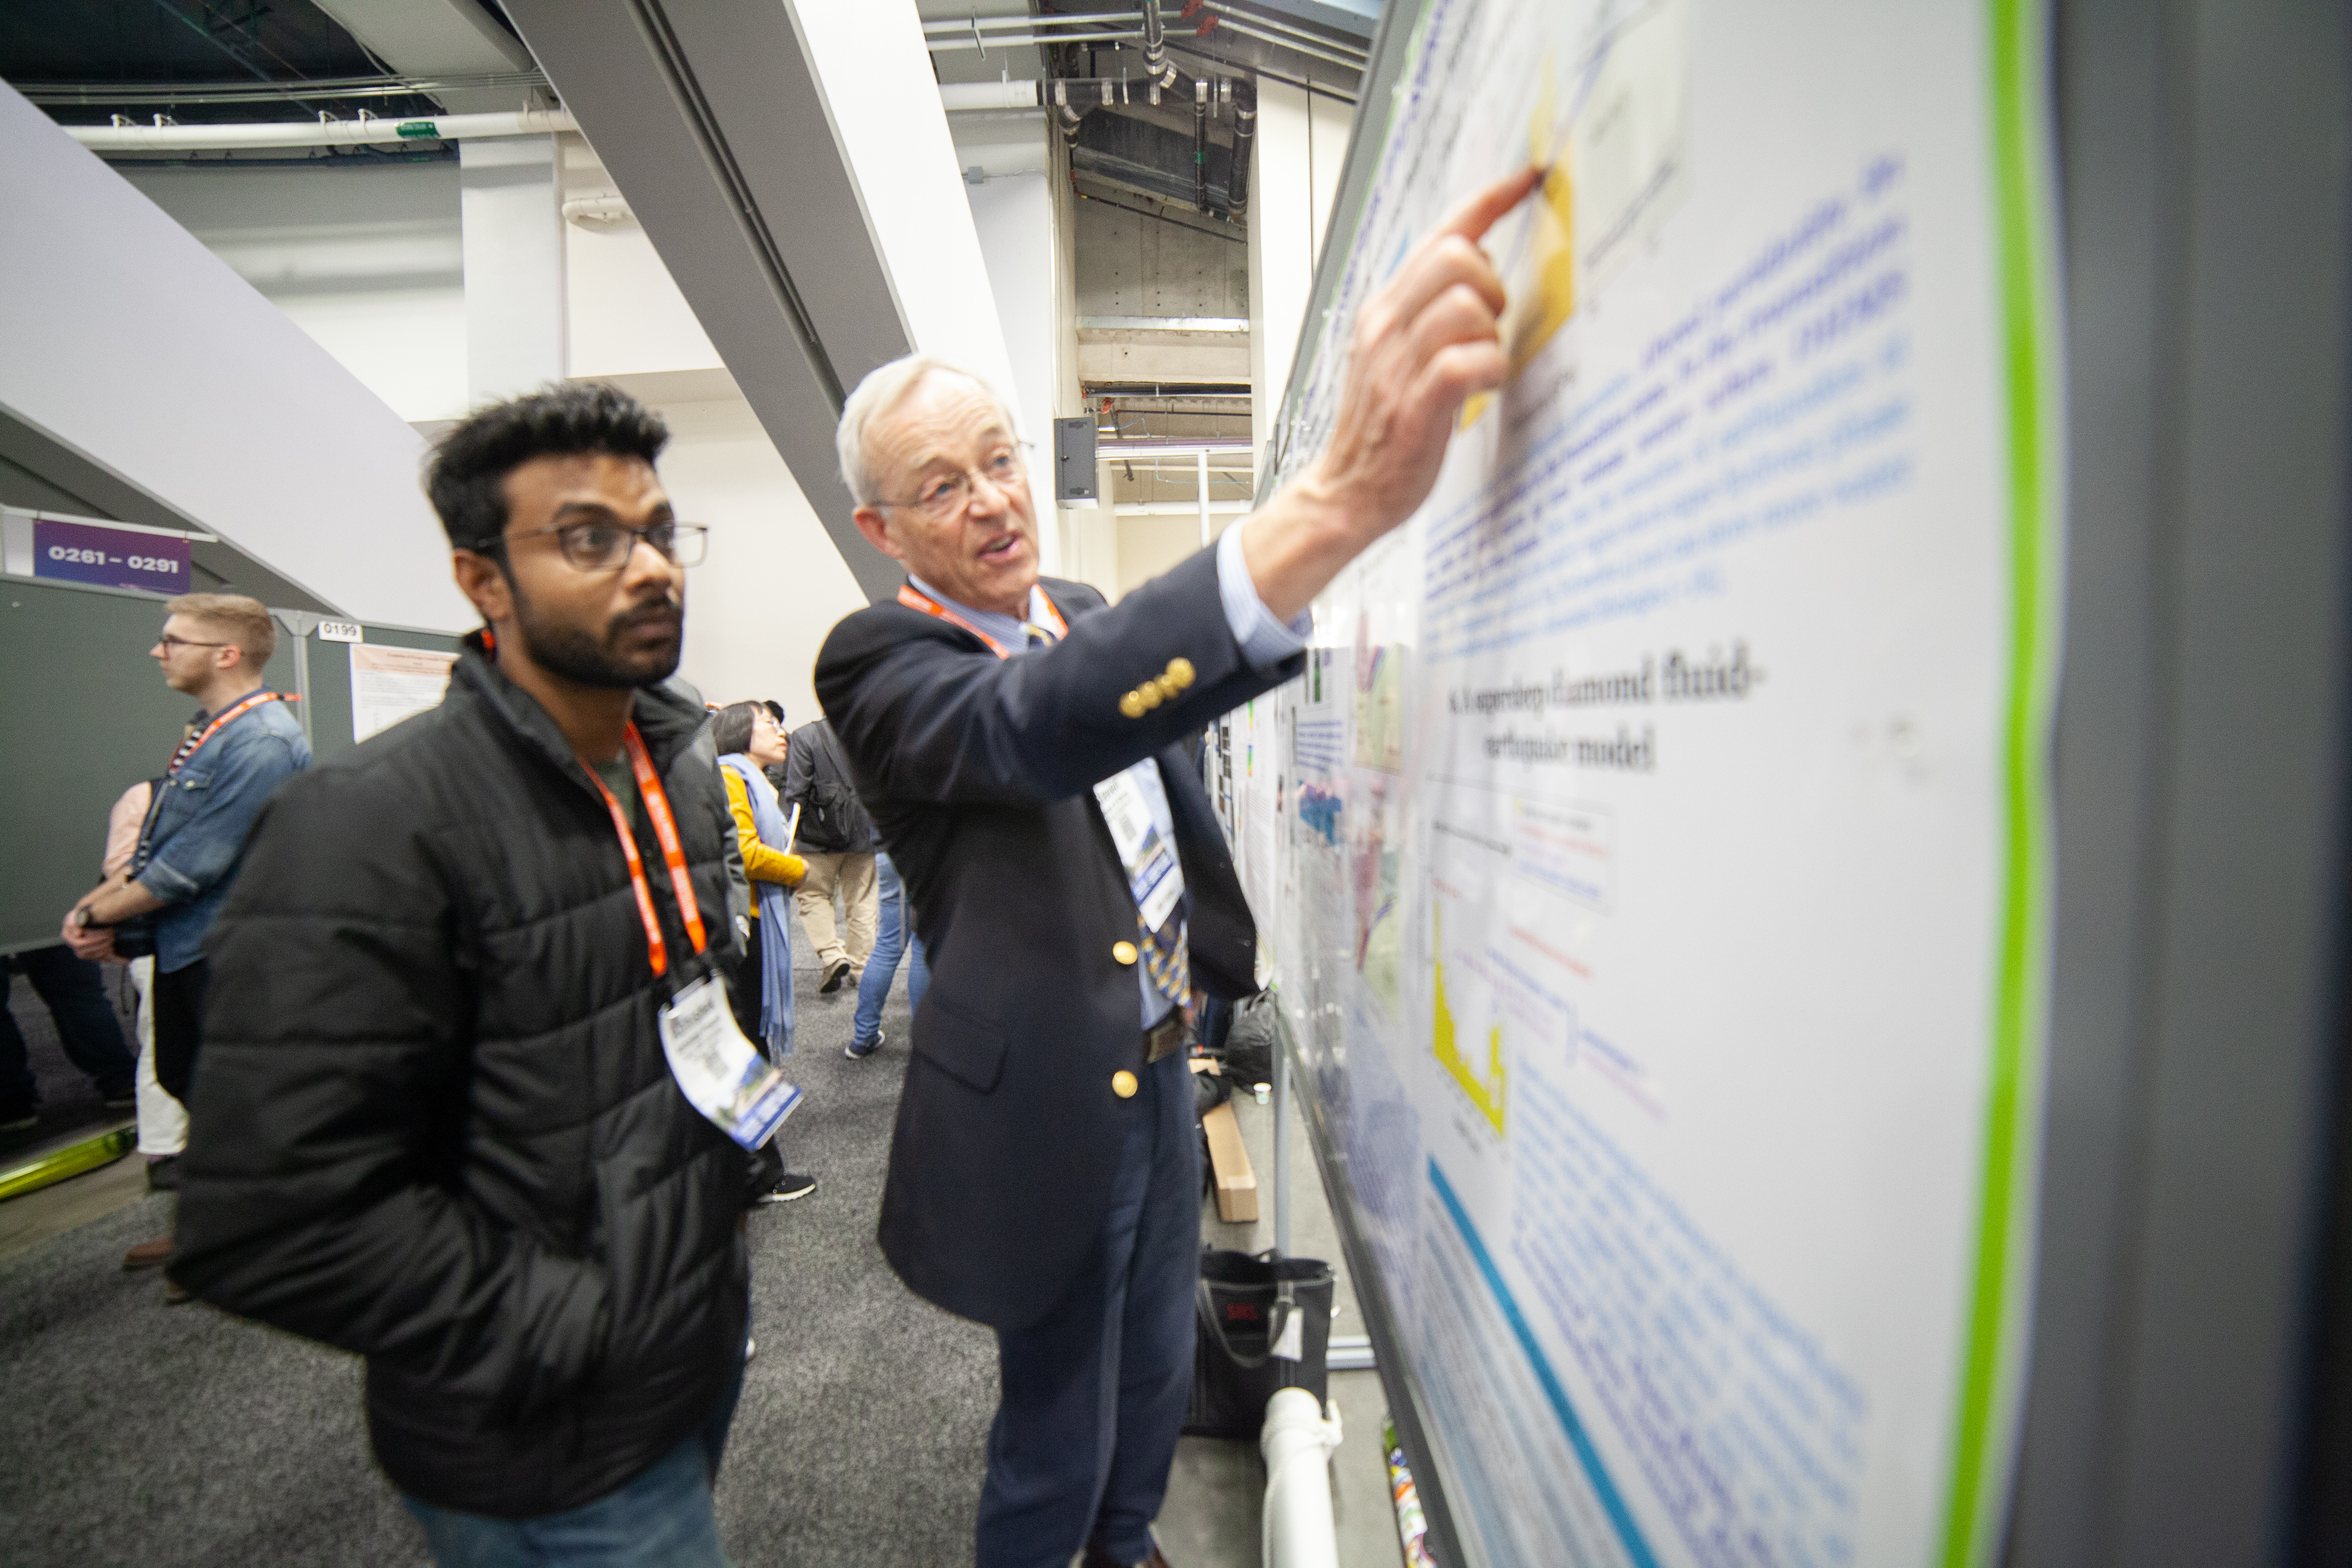 Steve Shirey presents his poster about deep earth diamonds to an AGU attendee.